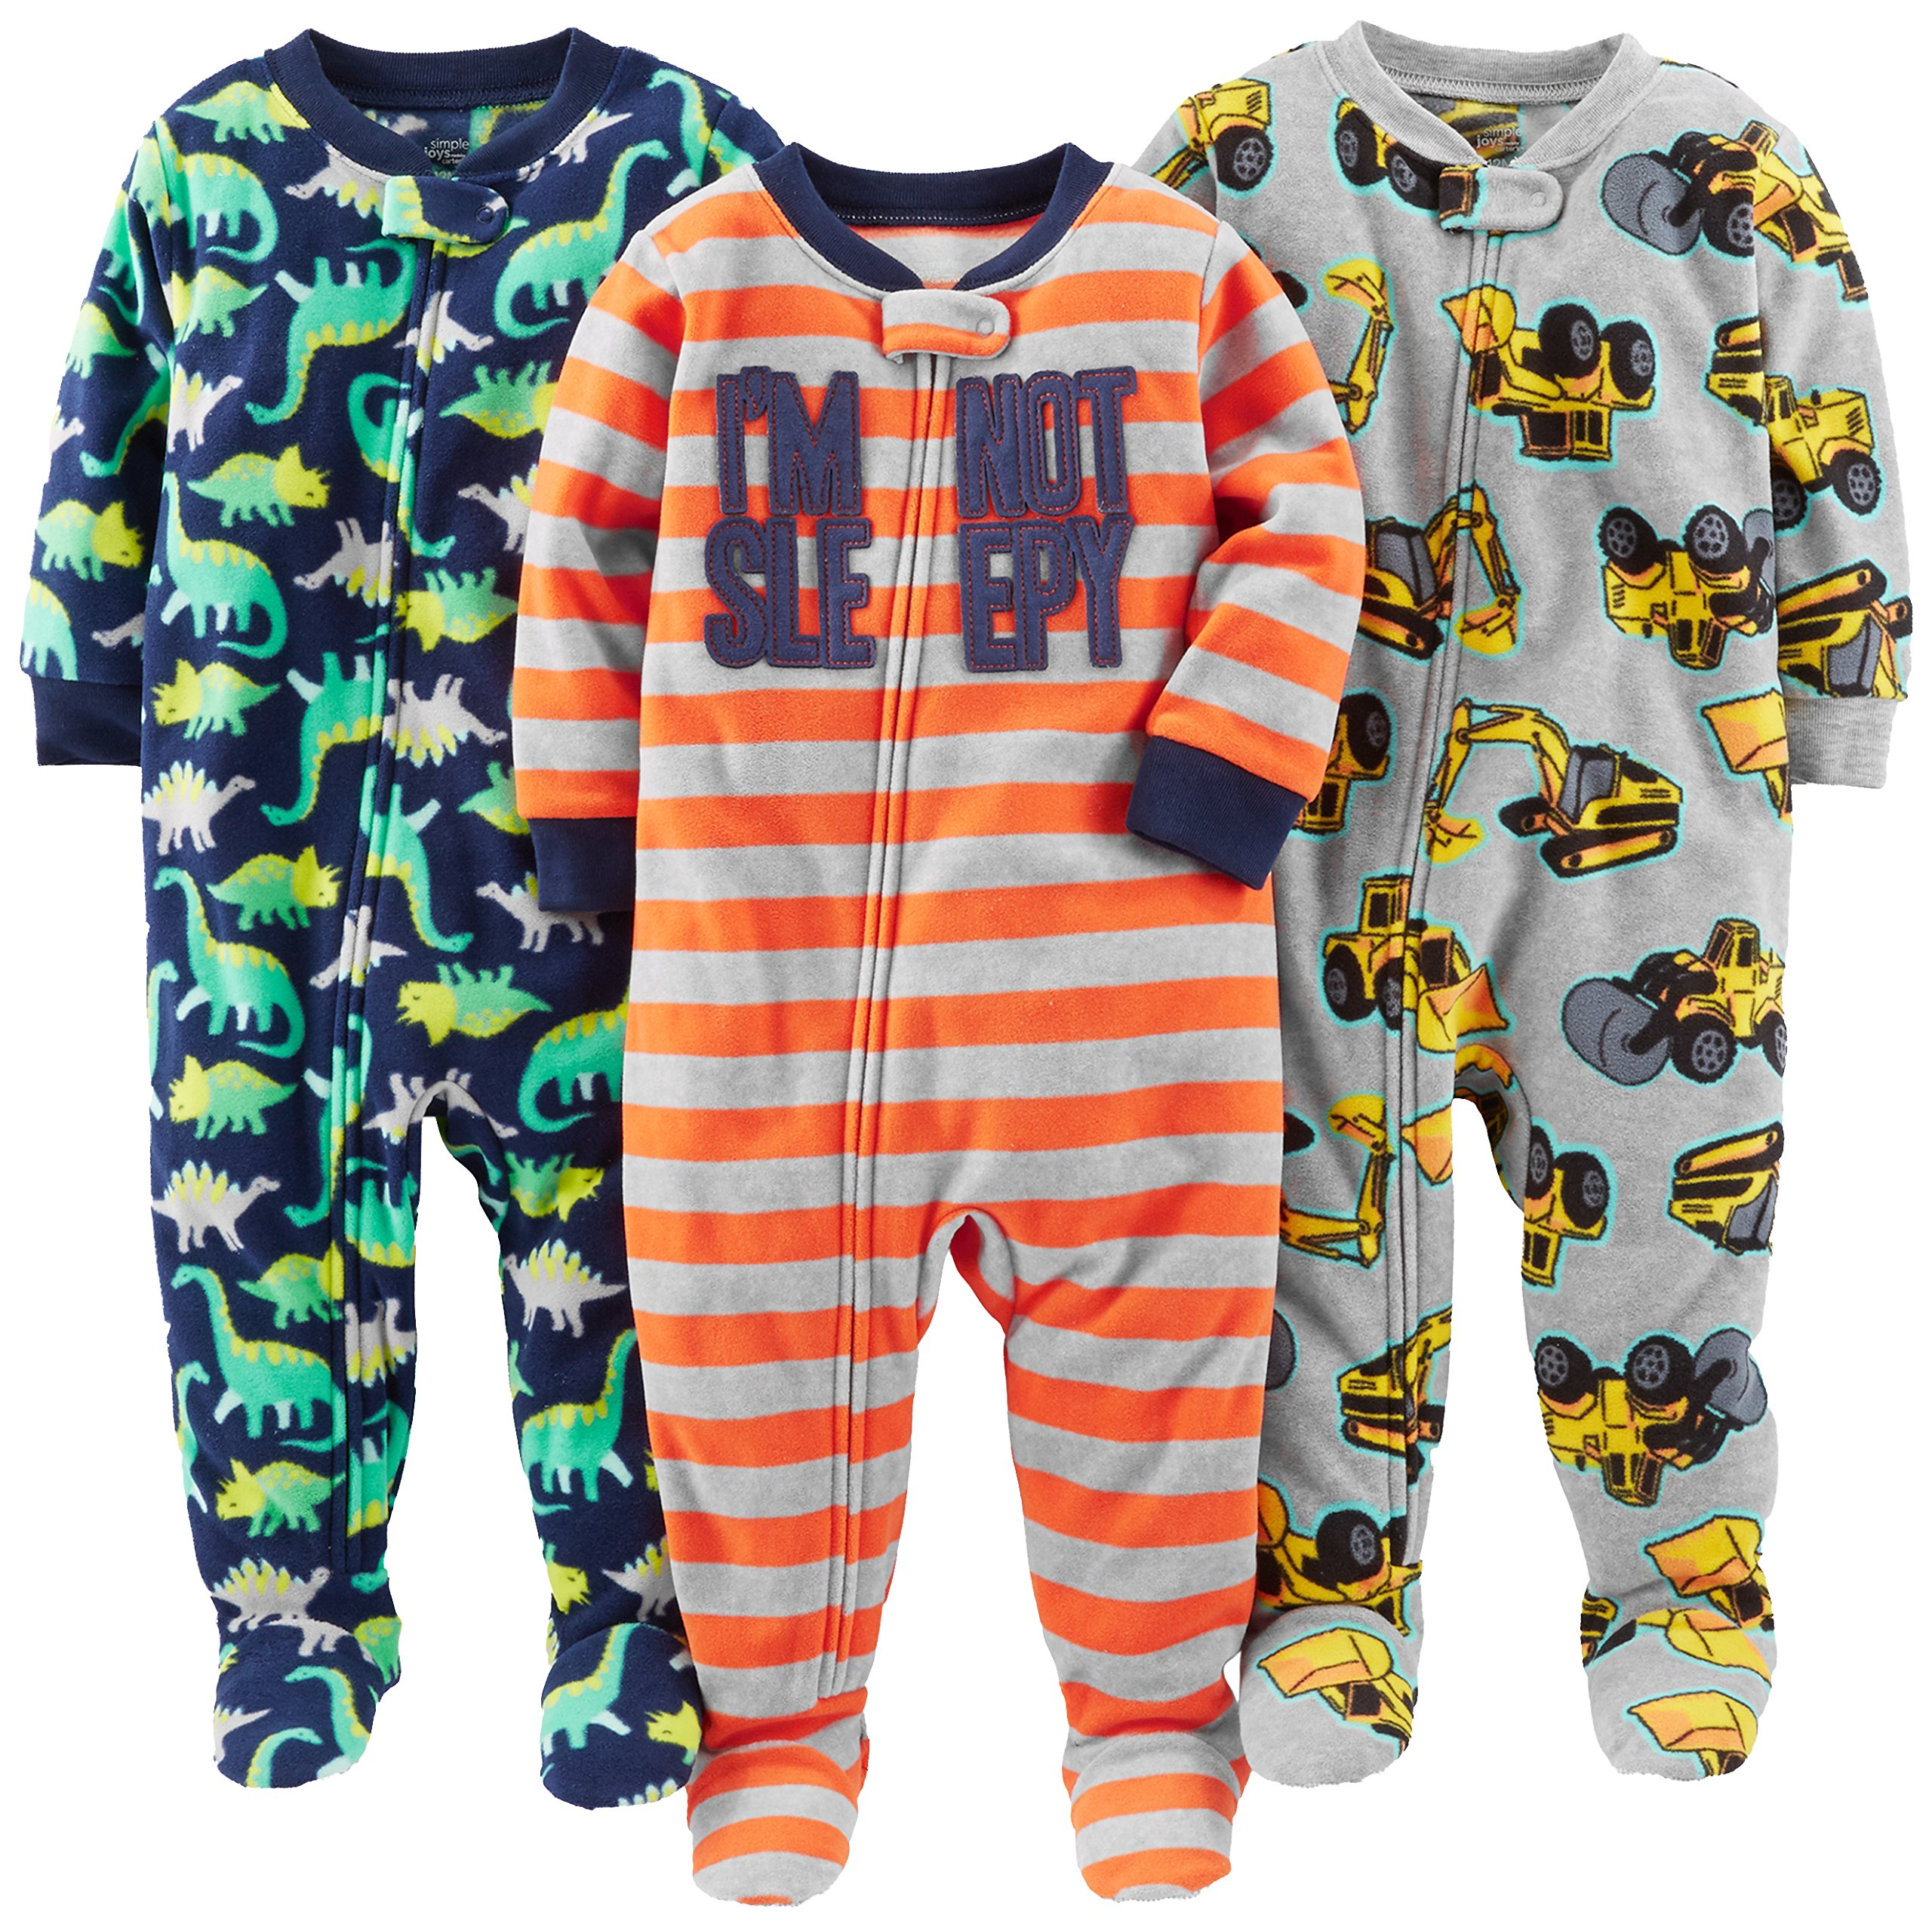 Simple Joys by Carters Baby Girls 3-Pack Loose Fit Flame Resistant Fleece Footed Pajamas